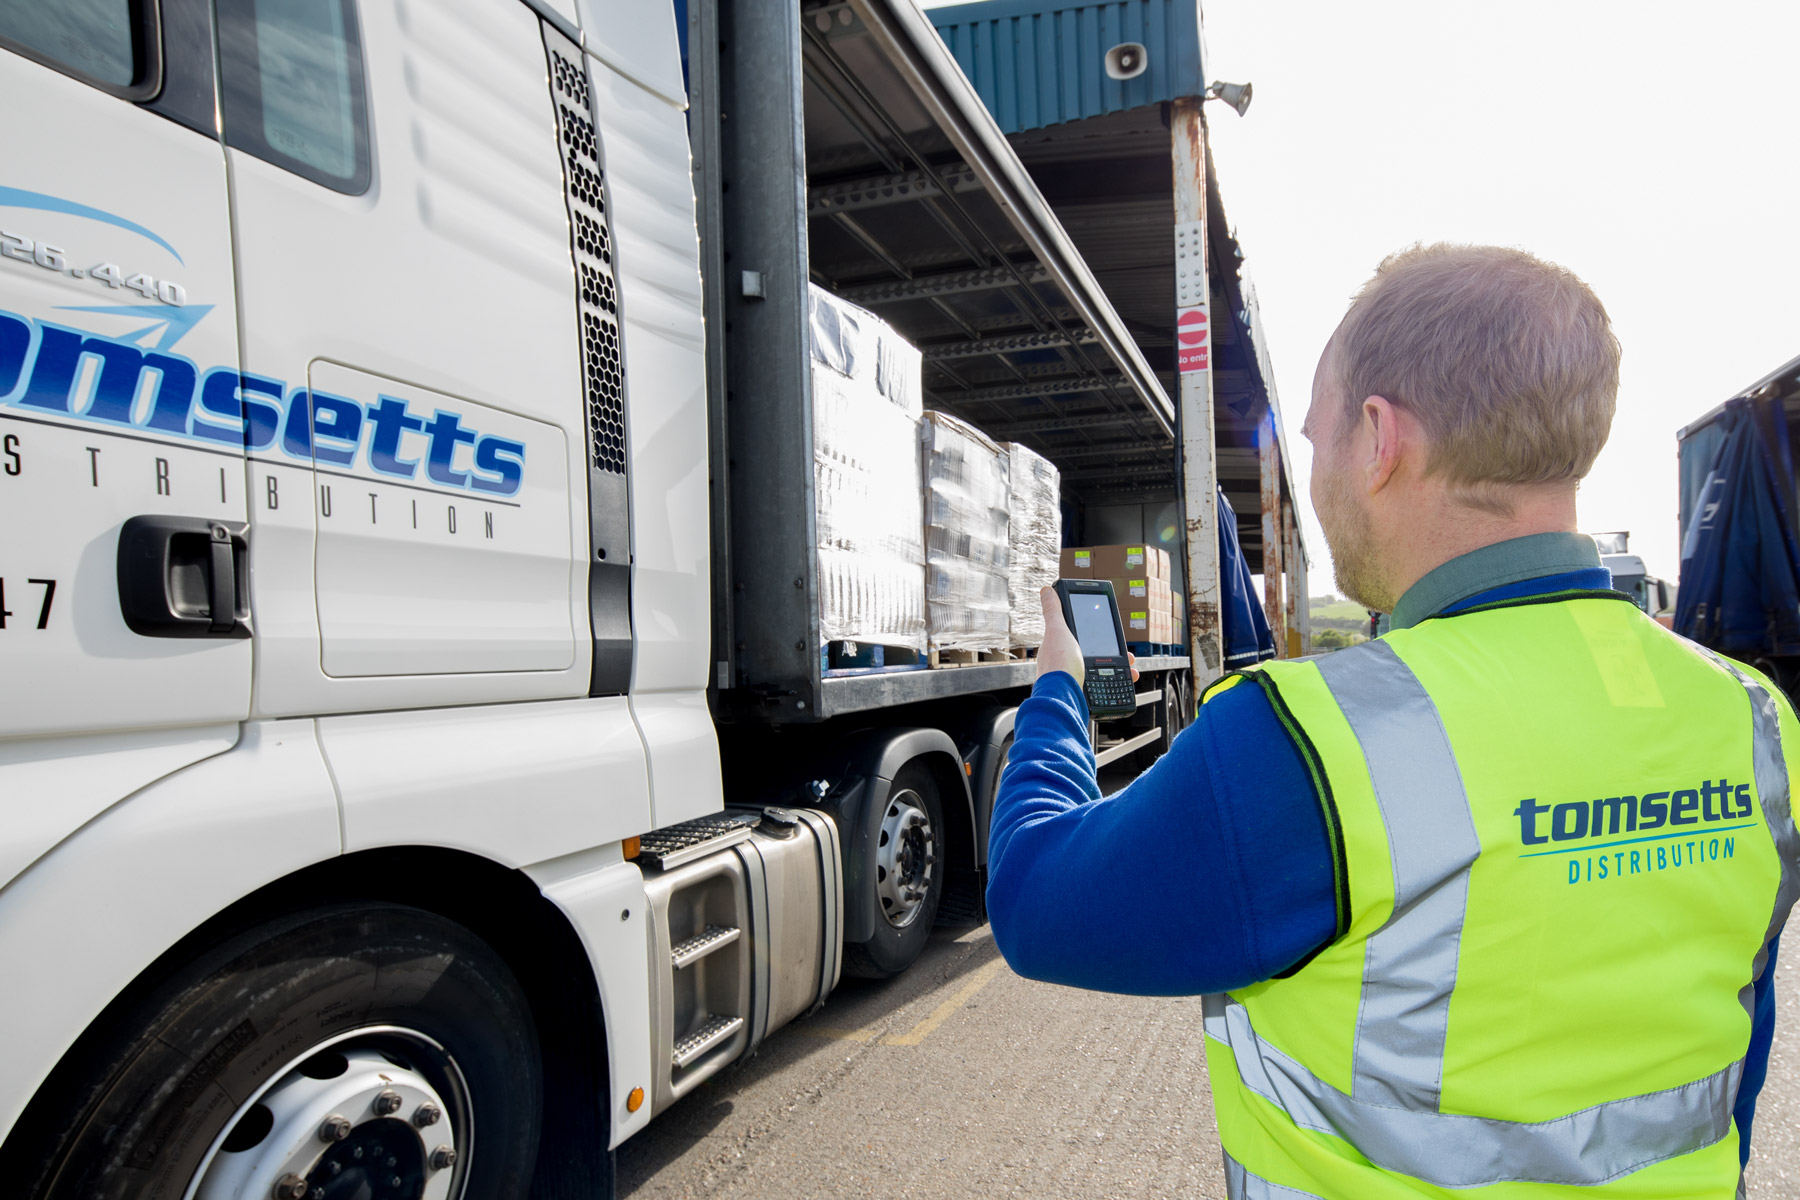 The latest news and vacancies at Tomsetts pallet distribution based in East Sussex, UK.